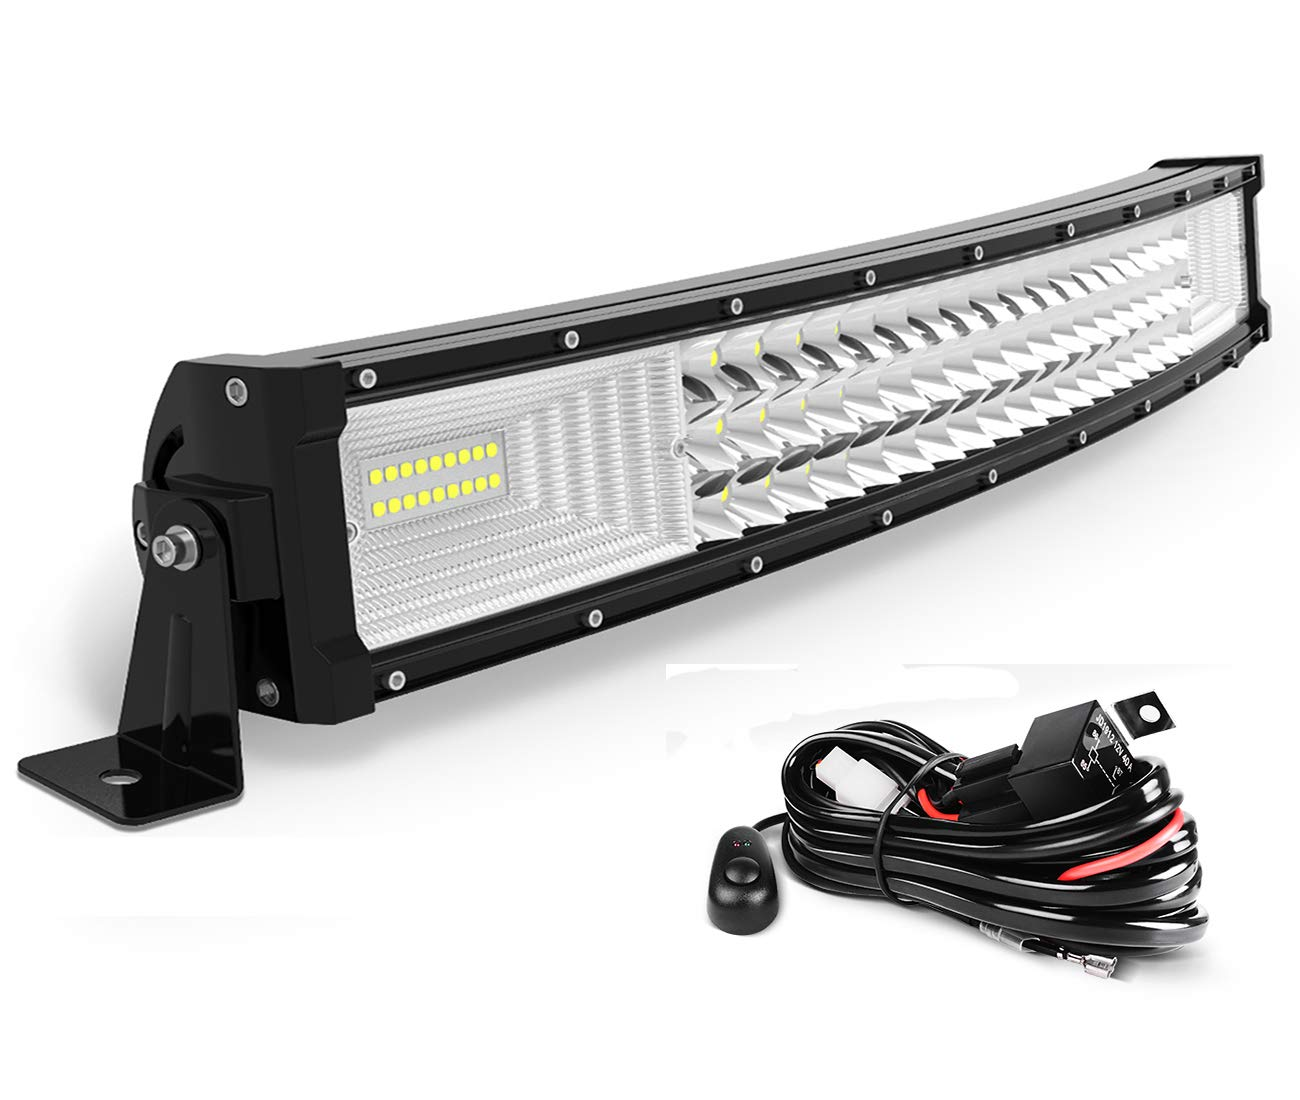 AUTOSAVER88 24 LED Light Bar Triple Row Curved Flood Spot Combo Beam Led Bar 270W Off Road Driving Lights with Wiring Harness for Jeep Trucks Boats ATV Jeep